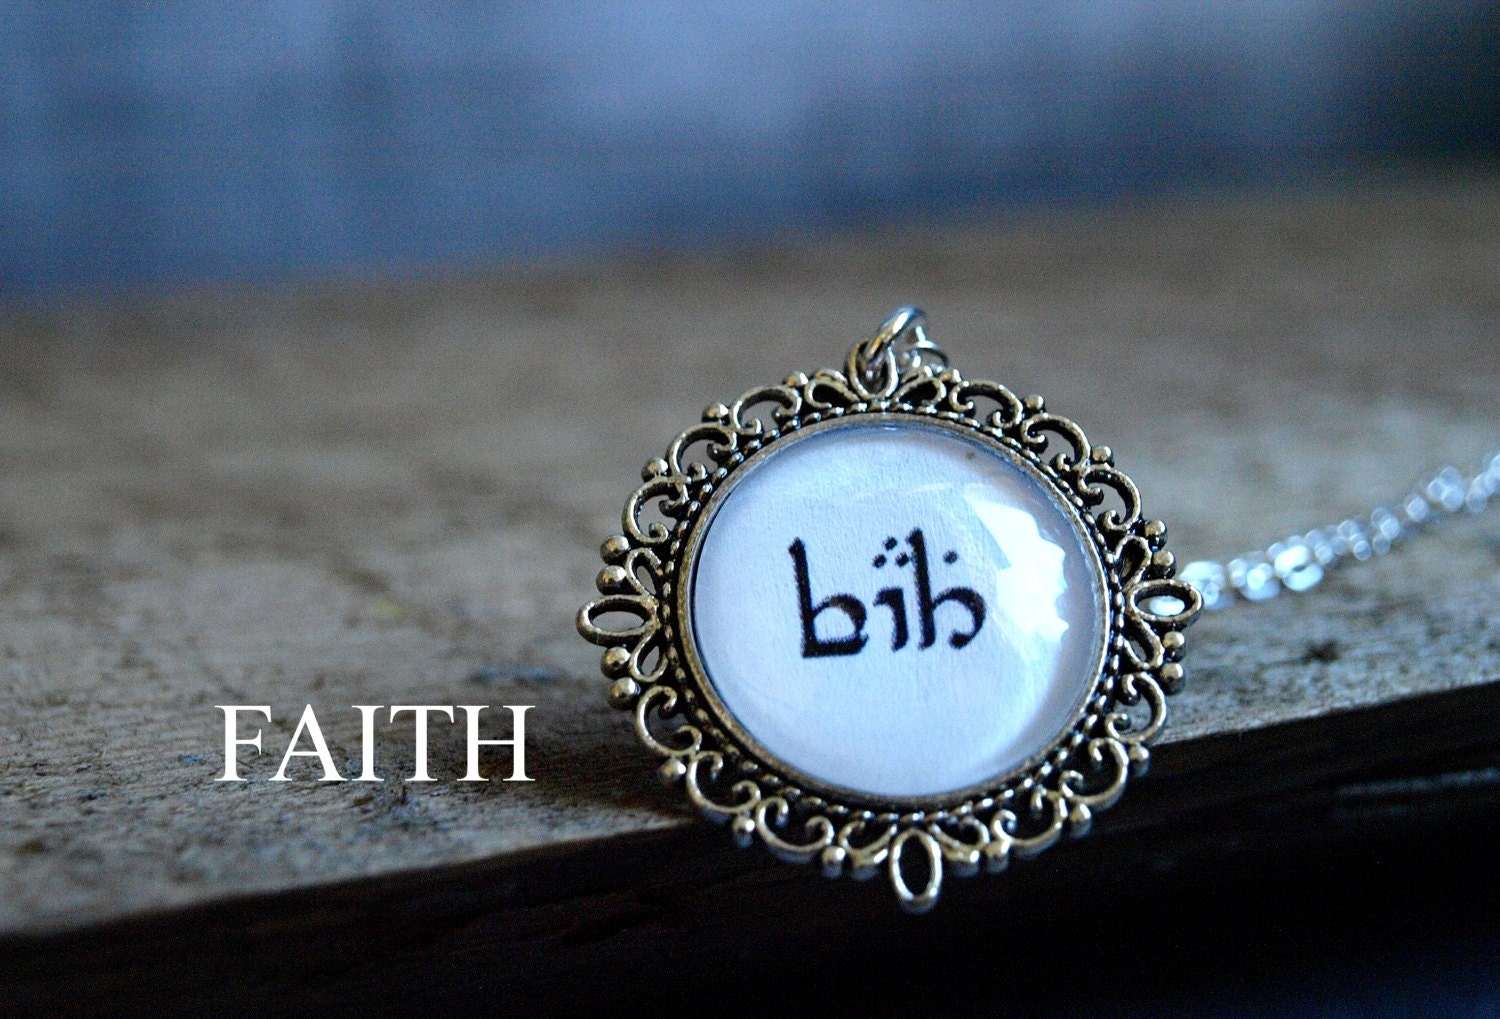 faith elvish necklace lord of the ring jewelry lotr by